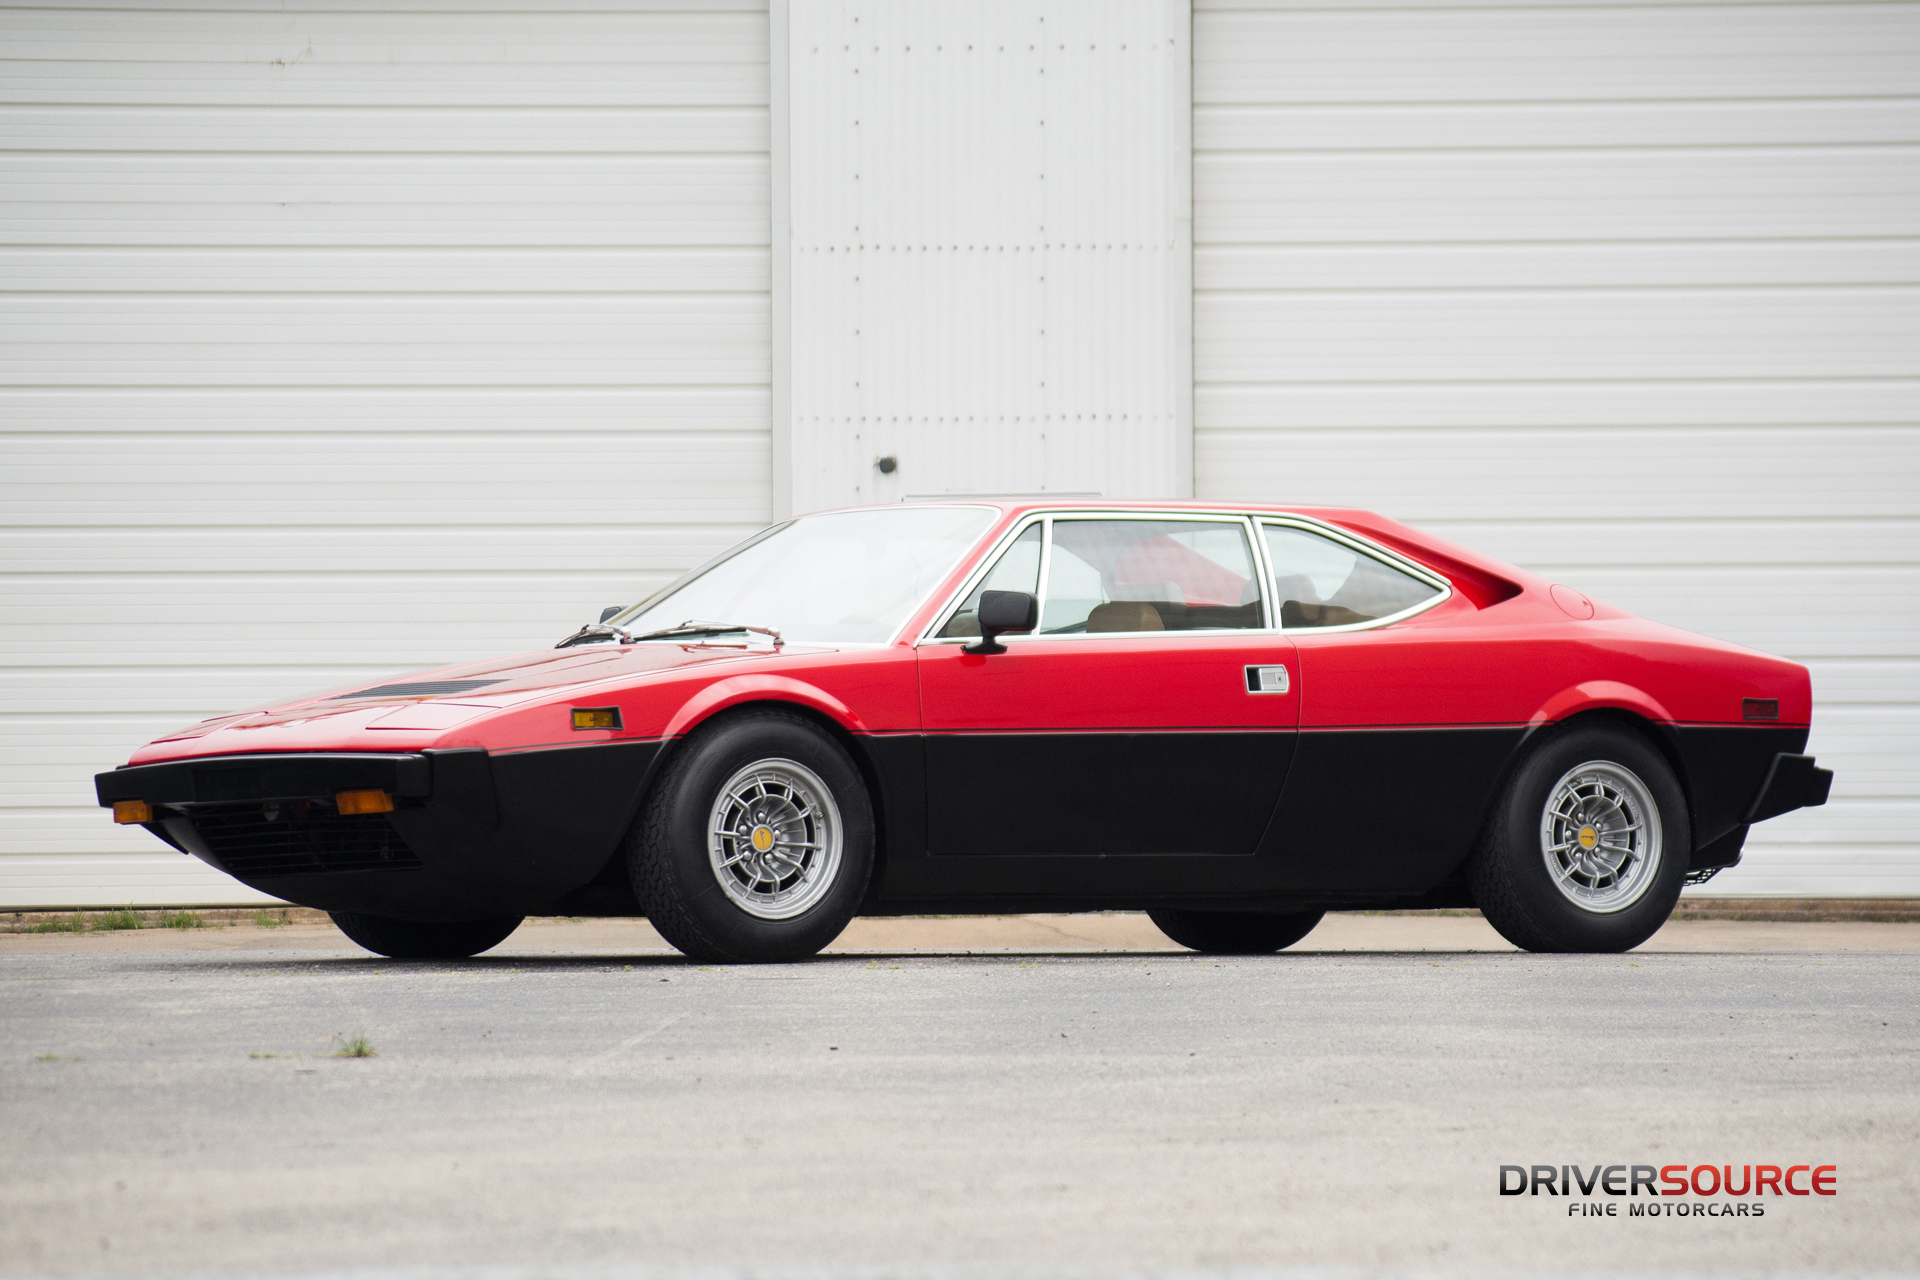 Meticulously Documented with All History & Service Records from New. 1975 Ferrari  Dino 308 GT4